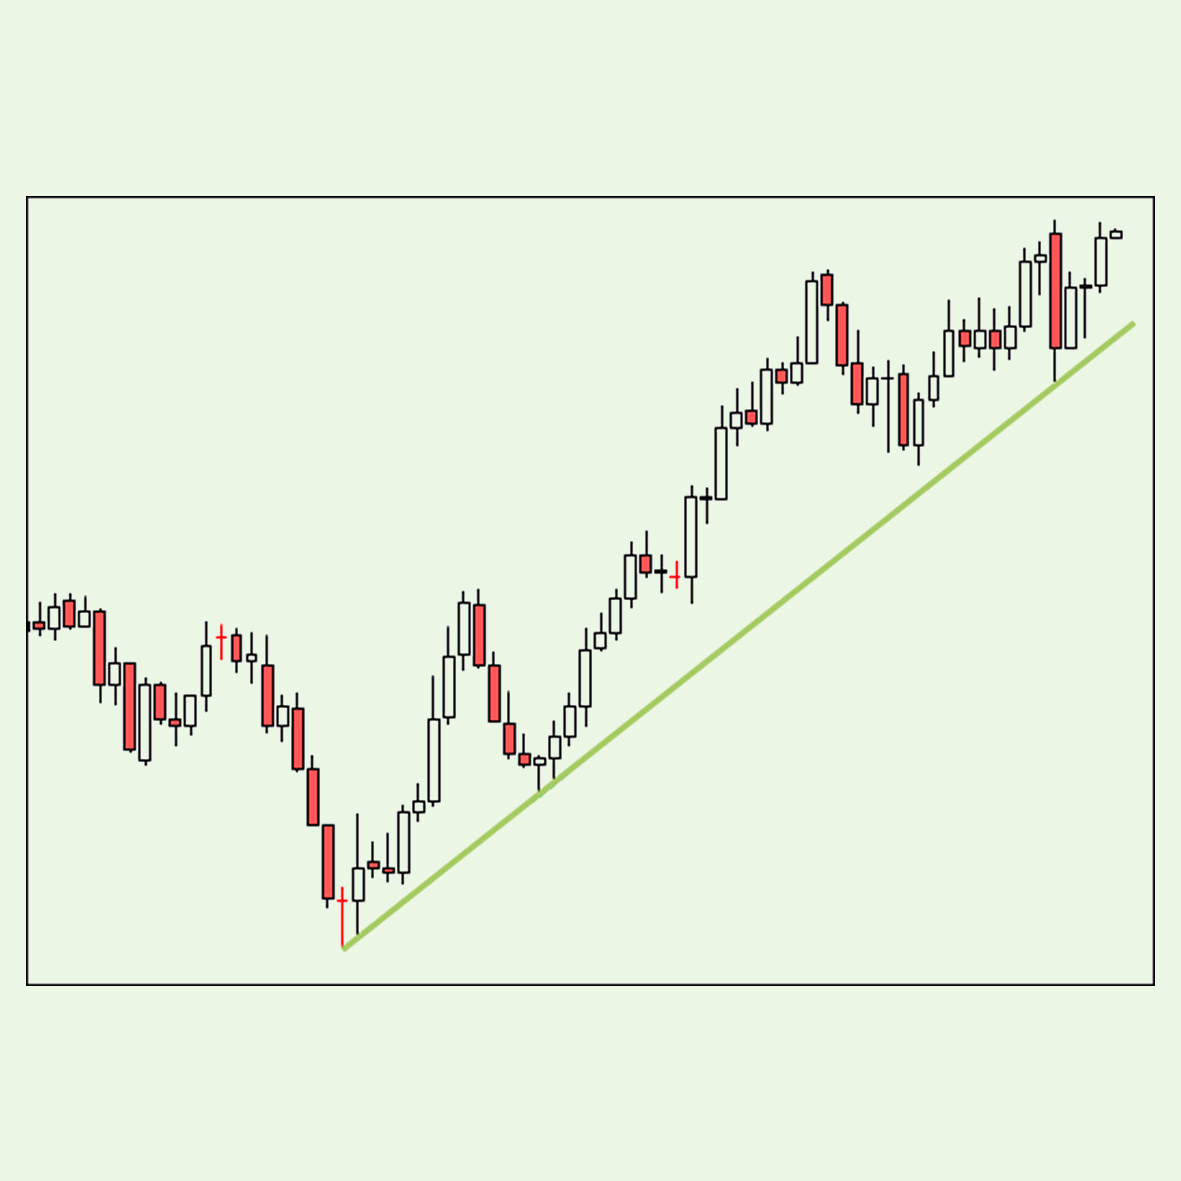 How to determine entry and exit points in forex